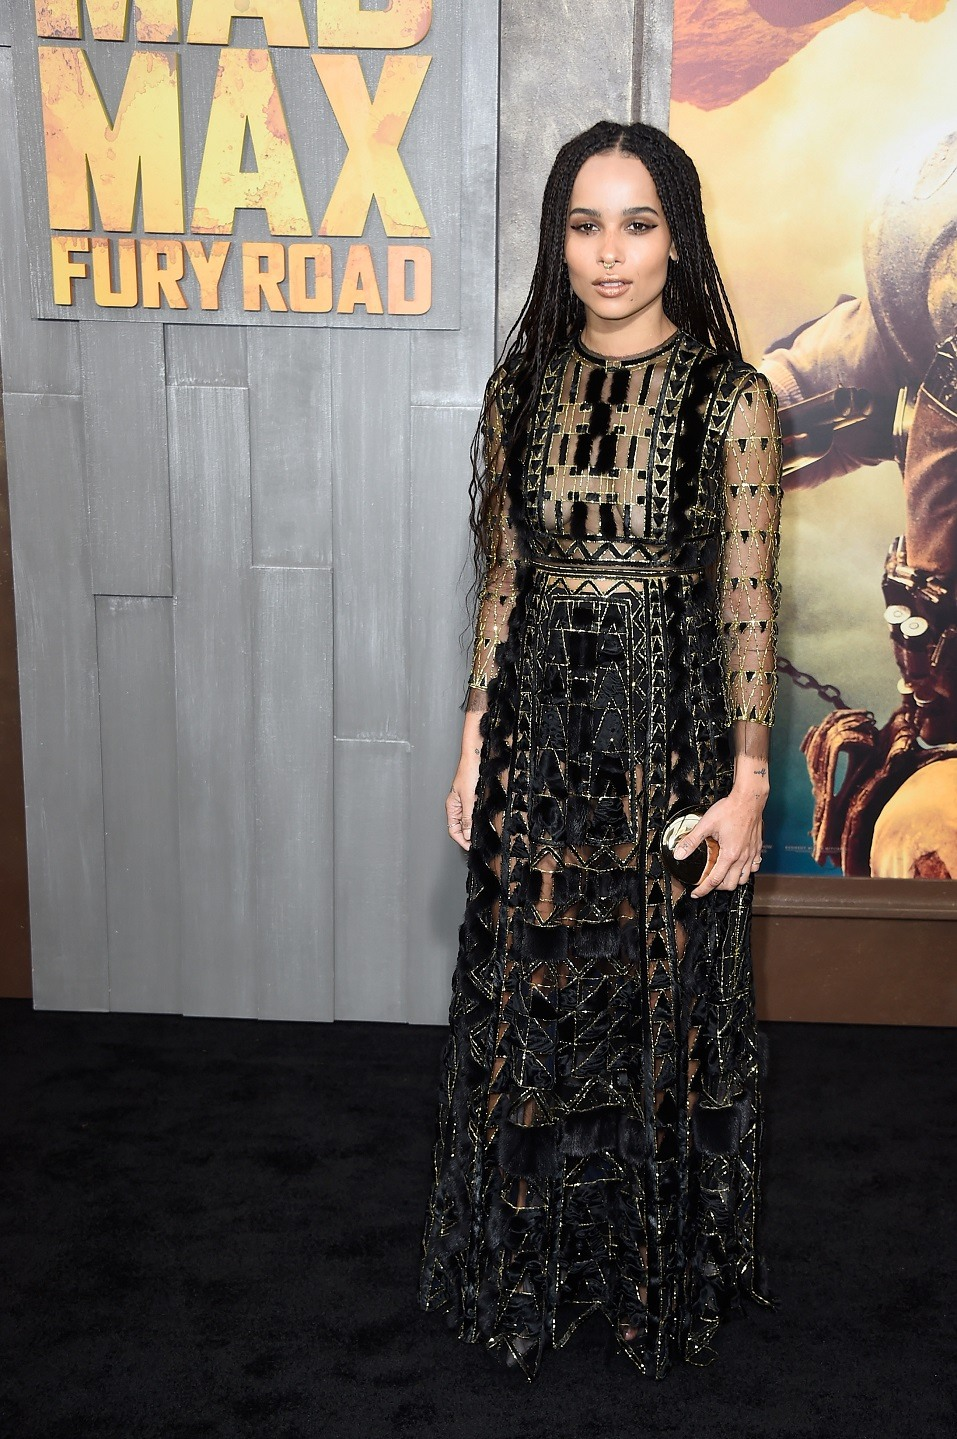 """Actress Zoe Kravitz attends the premiere of Warner Bros. Pictures' """"Mad Max: Fury Road"""" at TCL Chinese Theatre"""